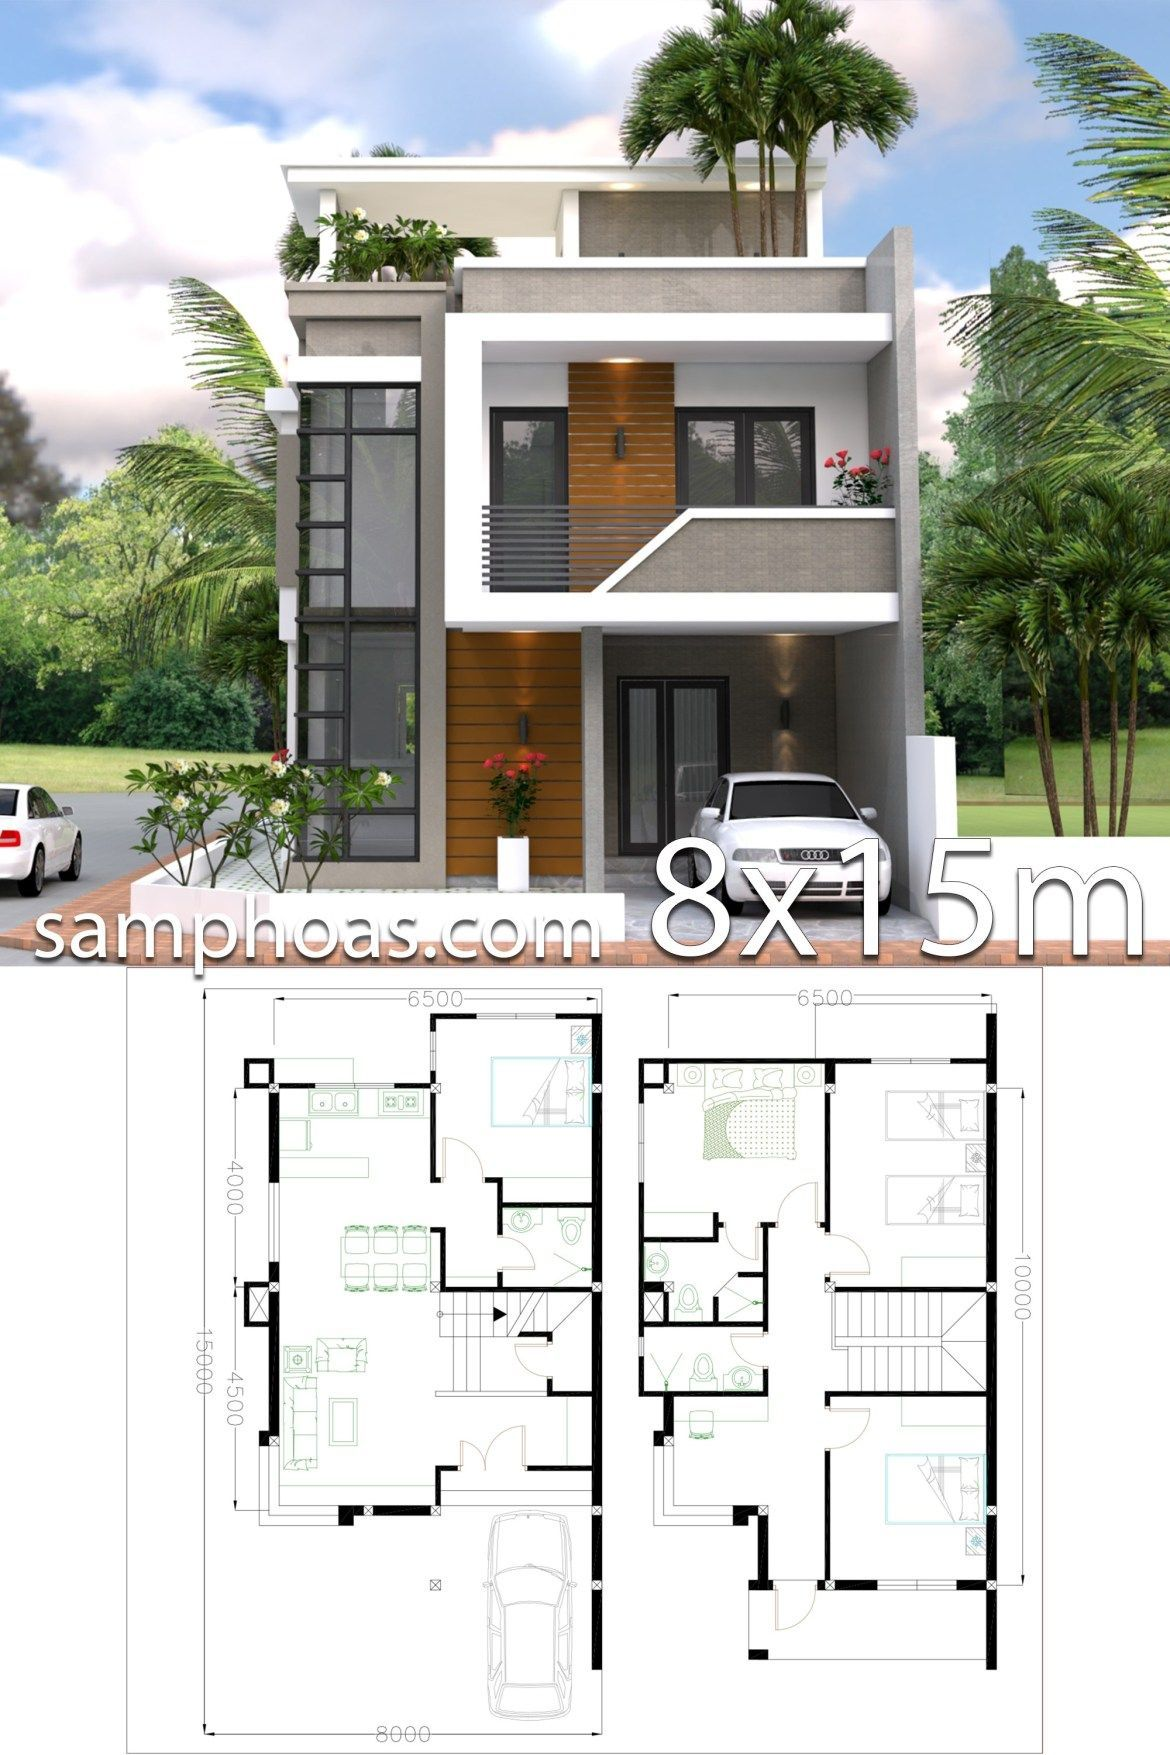 Drawing On Creativity Drawing On Demand Minimalist House Design Modern House Design Model House Plan